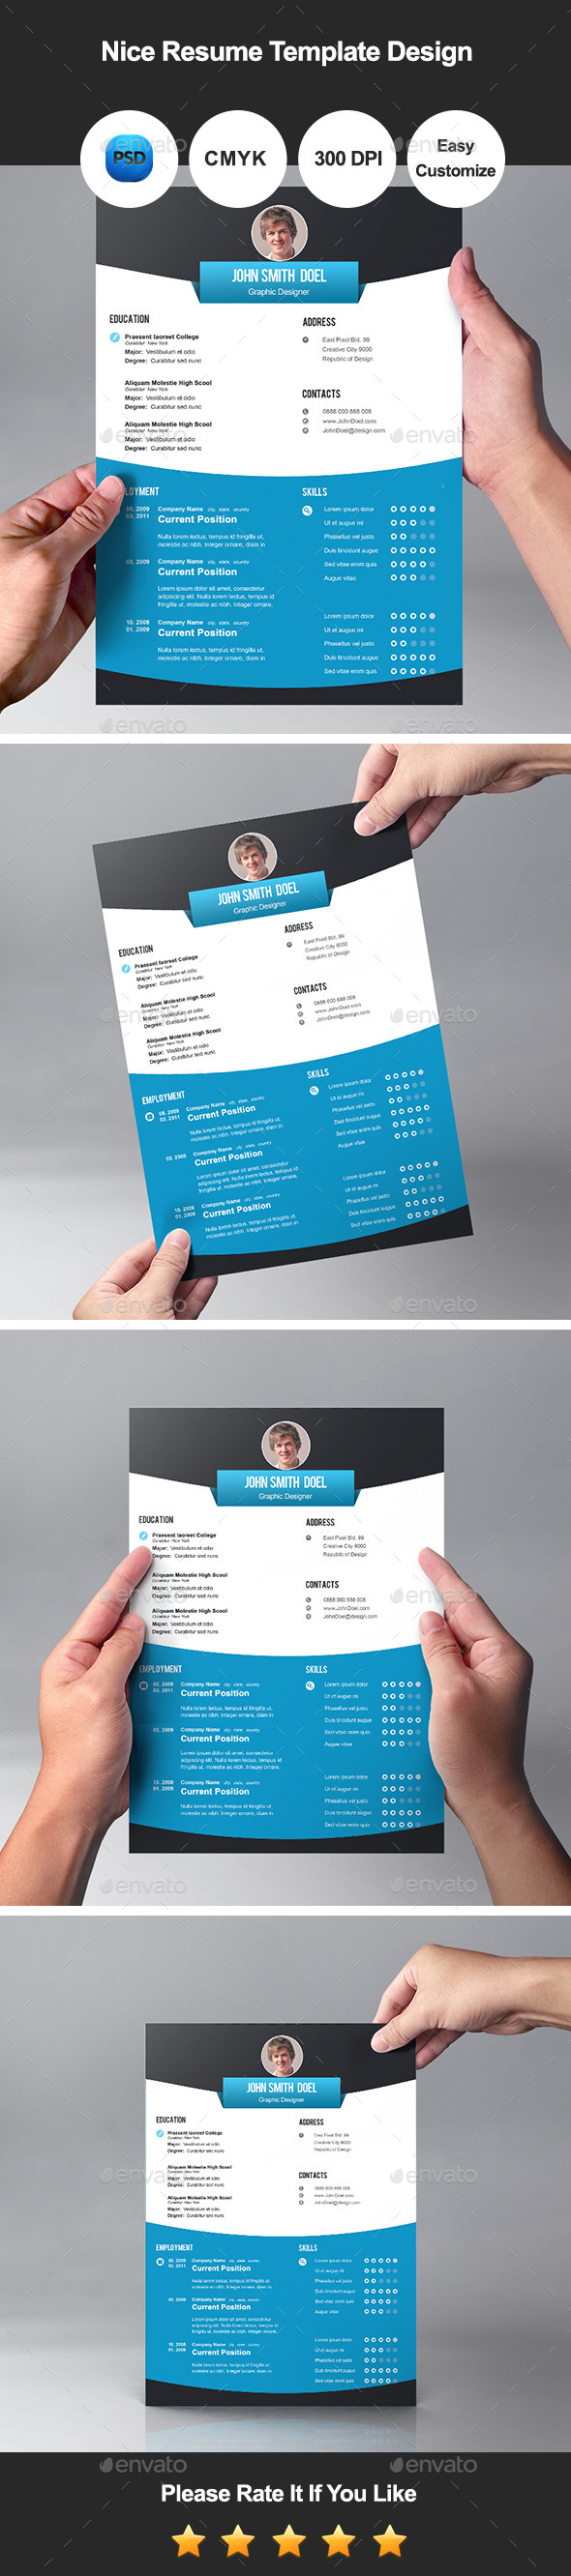 GraphicRiver Nice Resume Template Design 11259472